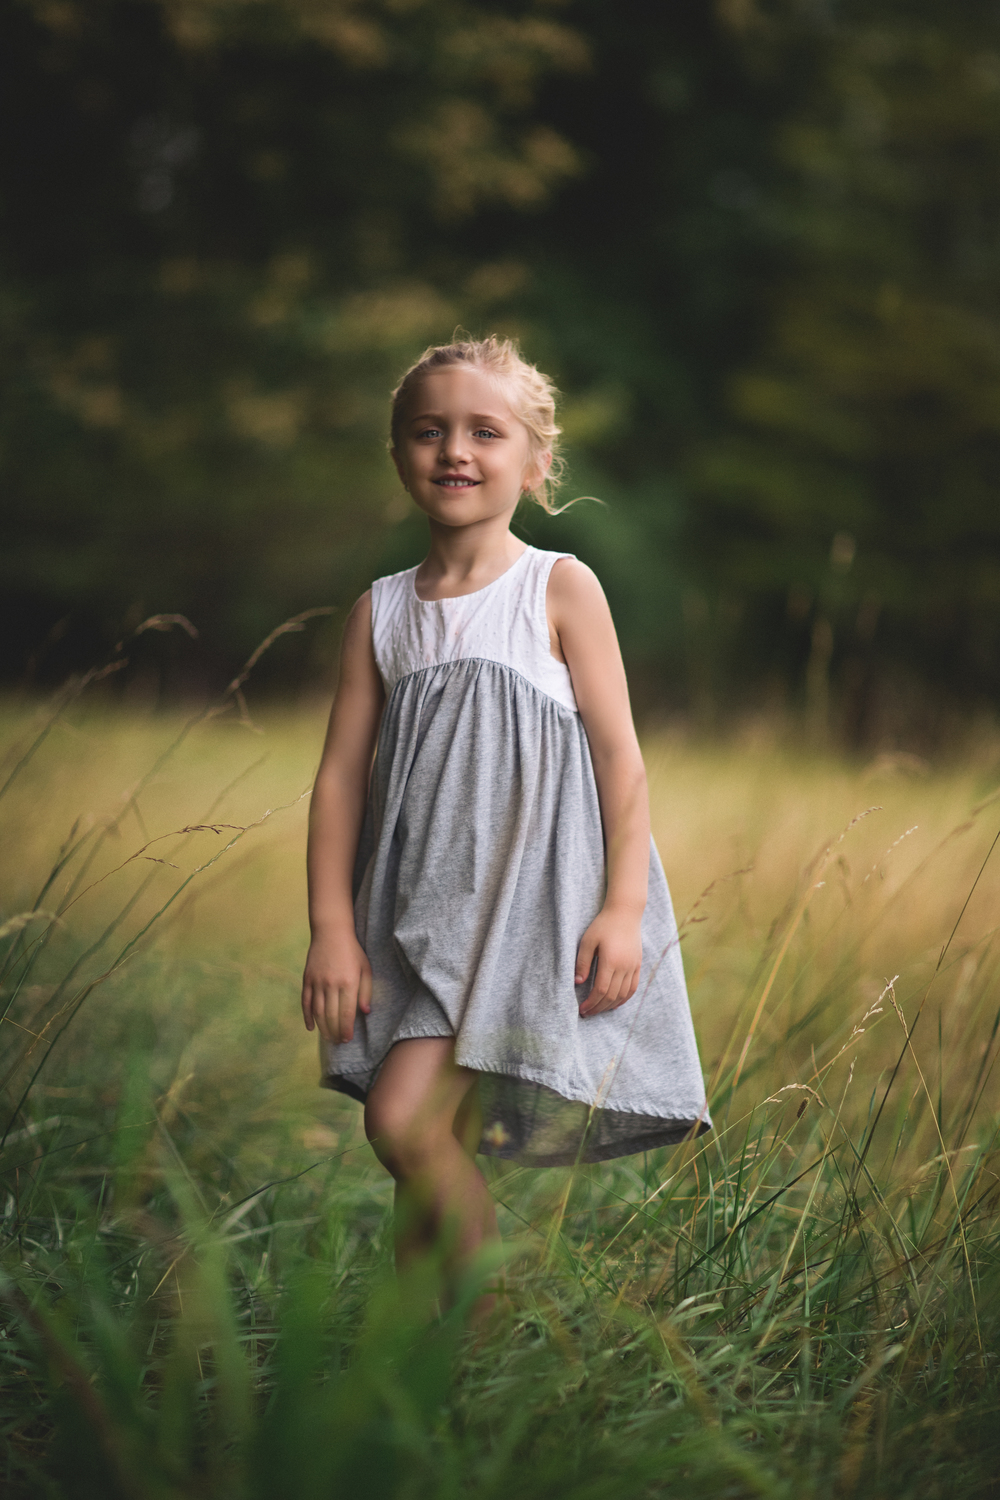 Long-island-photographer-hello-olivia-photography-family-child-dress-suffolk-field.jpg